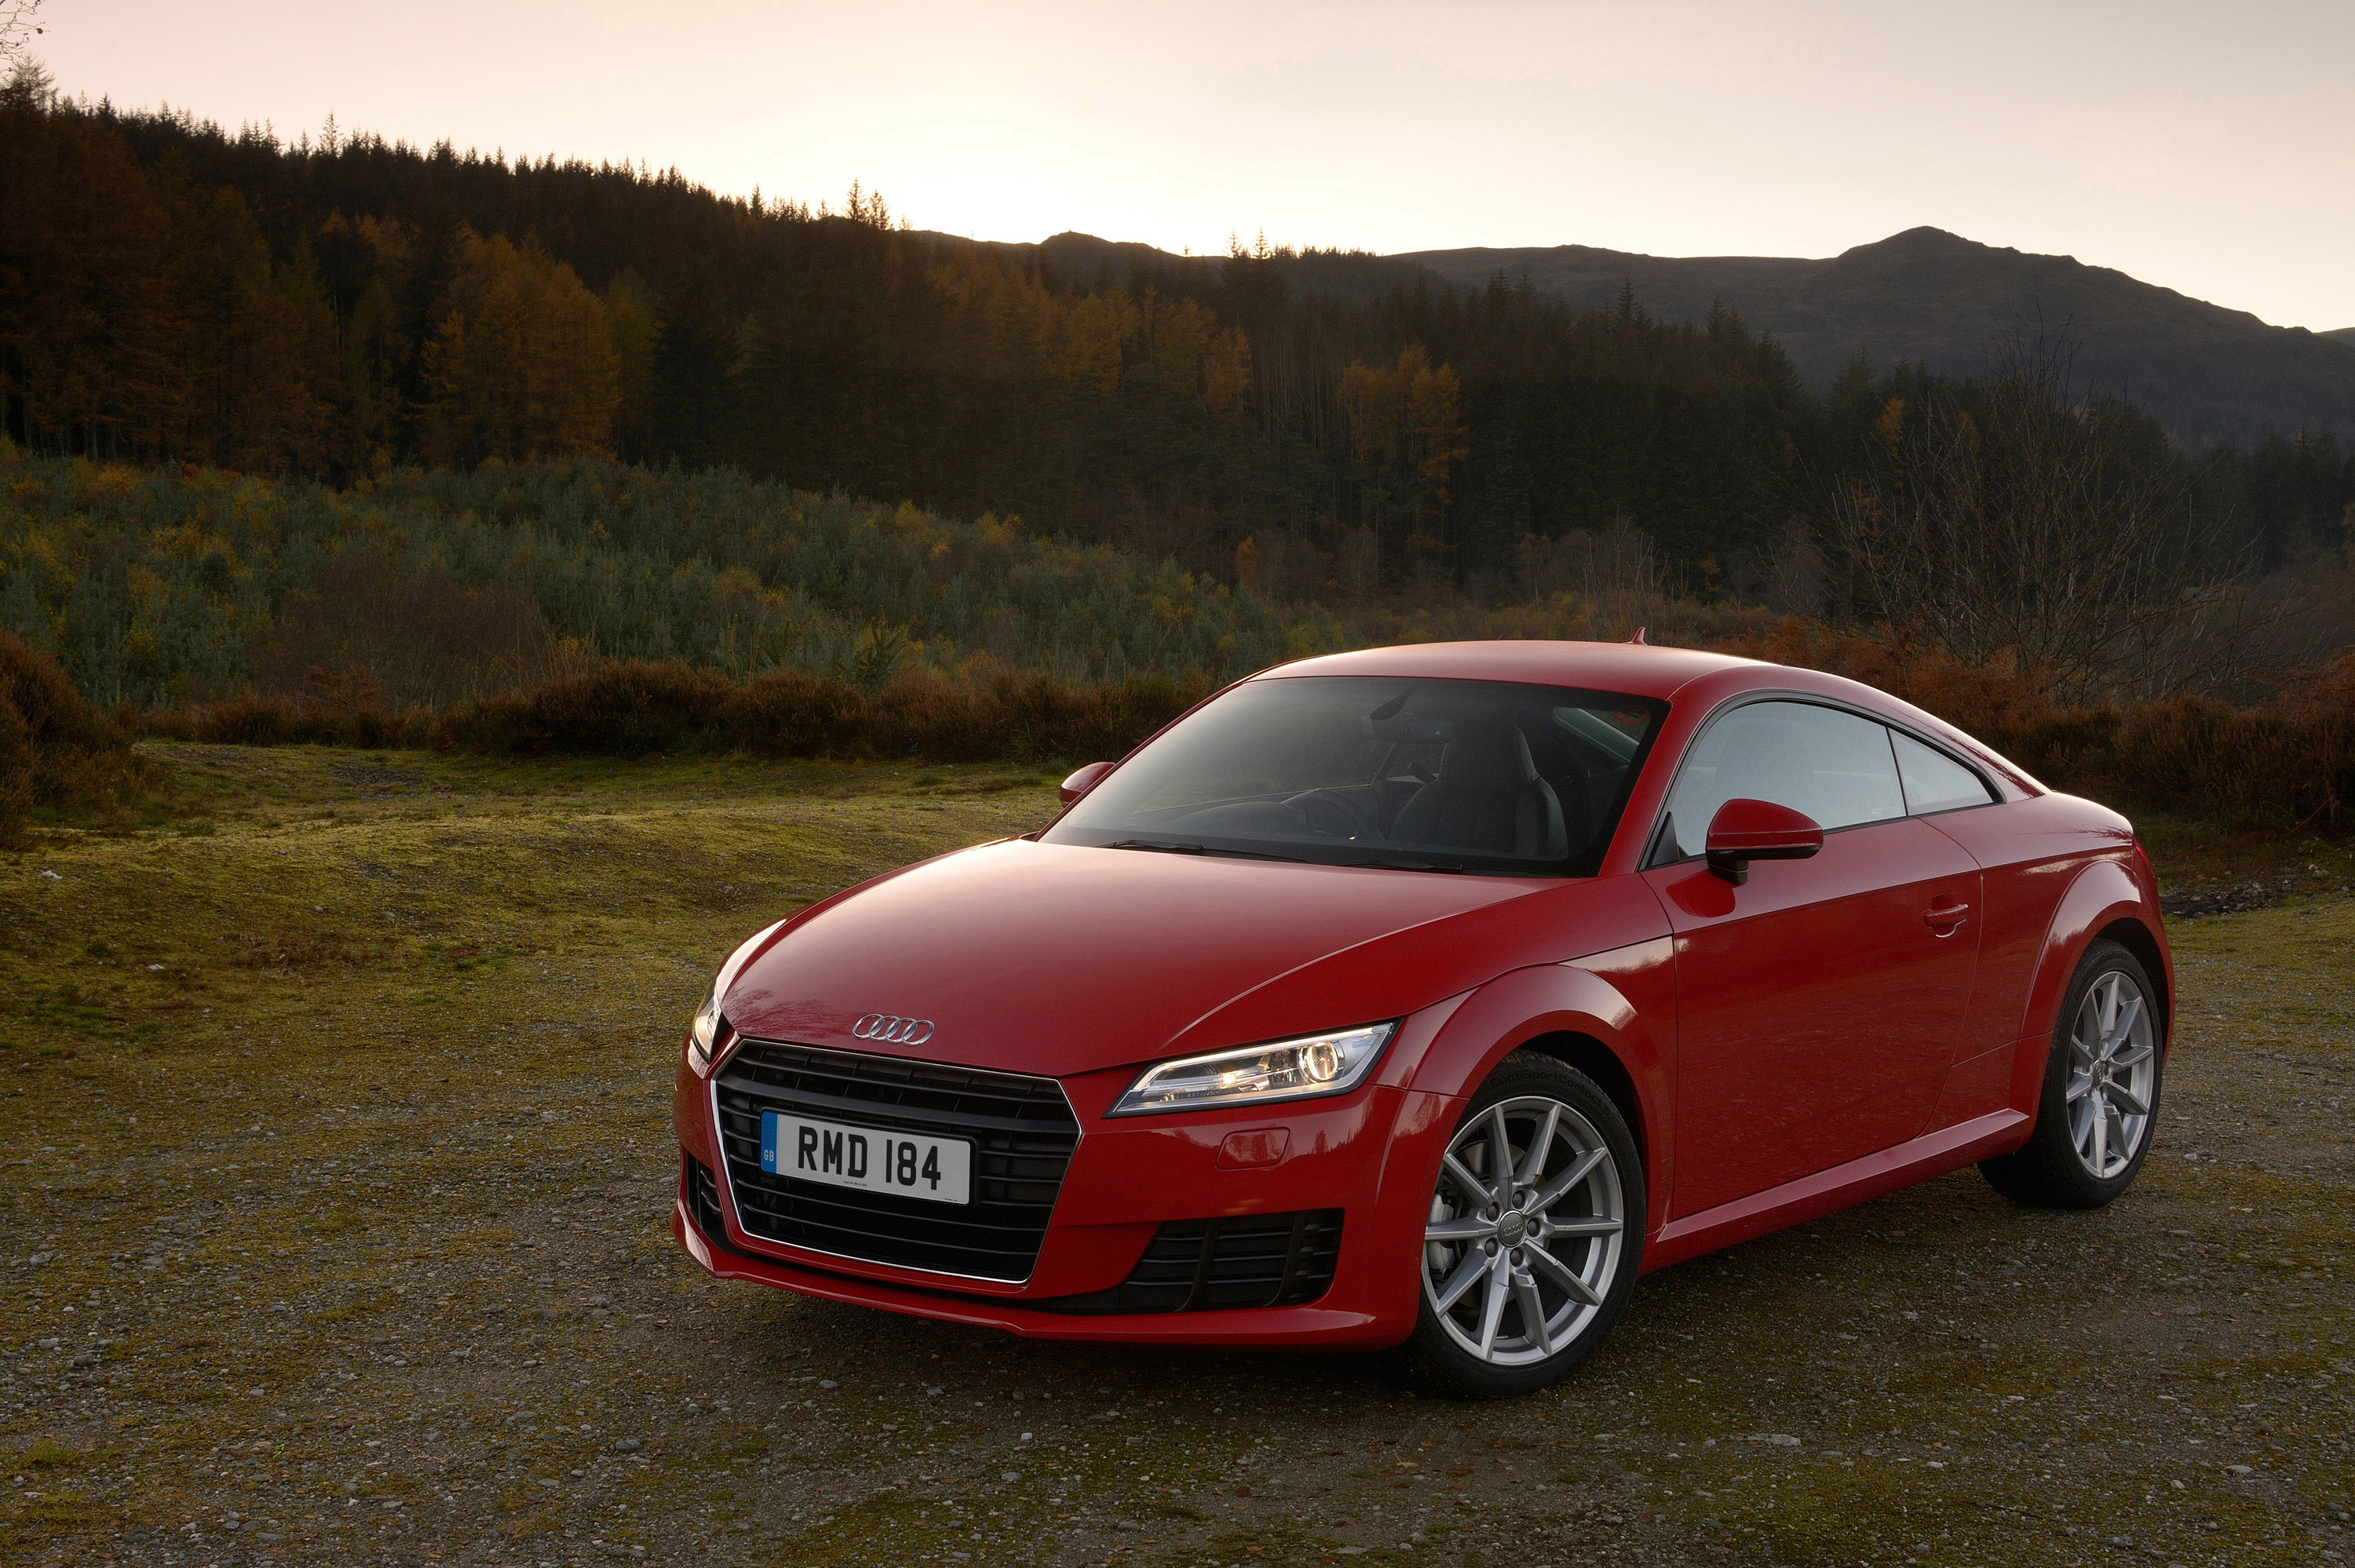 2015 Audi Tt Coupe Tdi Ultra Wins One More Award